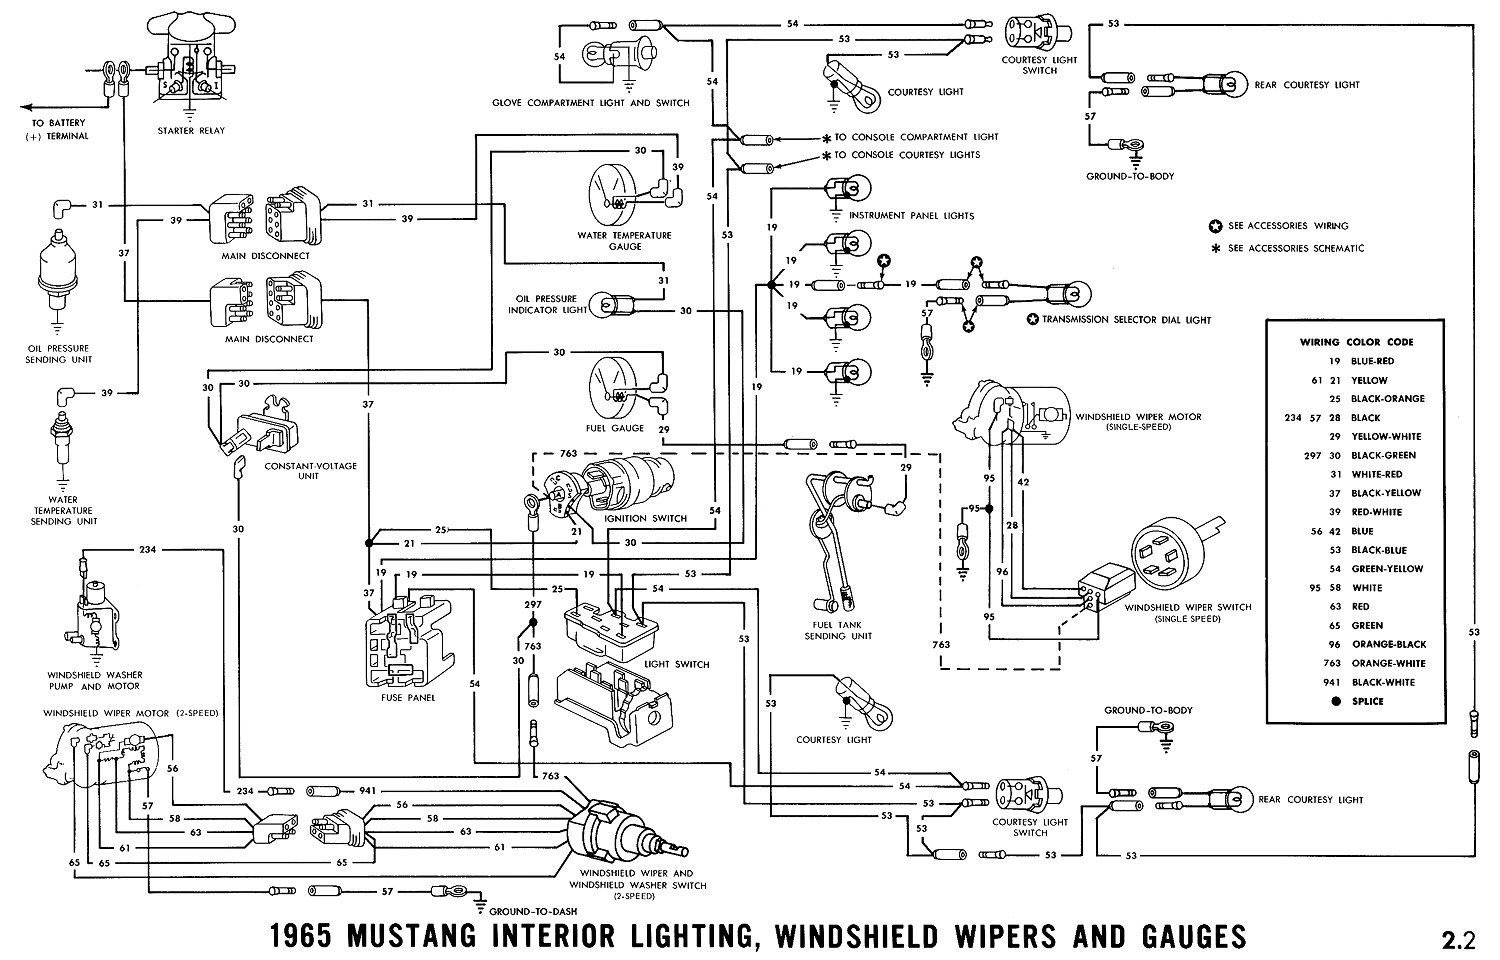 1969 Mustang Fuse Panel Diagram Touch Wiring Diagrams F250 Block 1968 Data 1981 Camaro